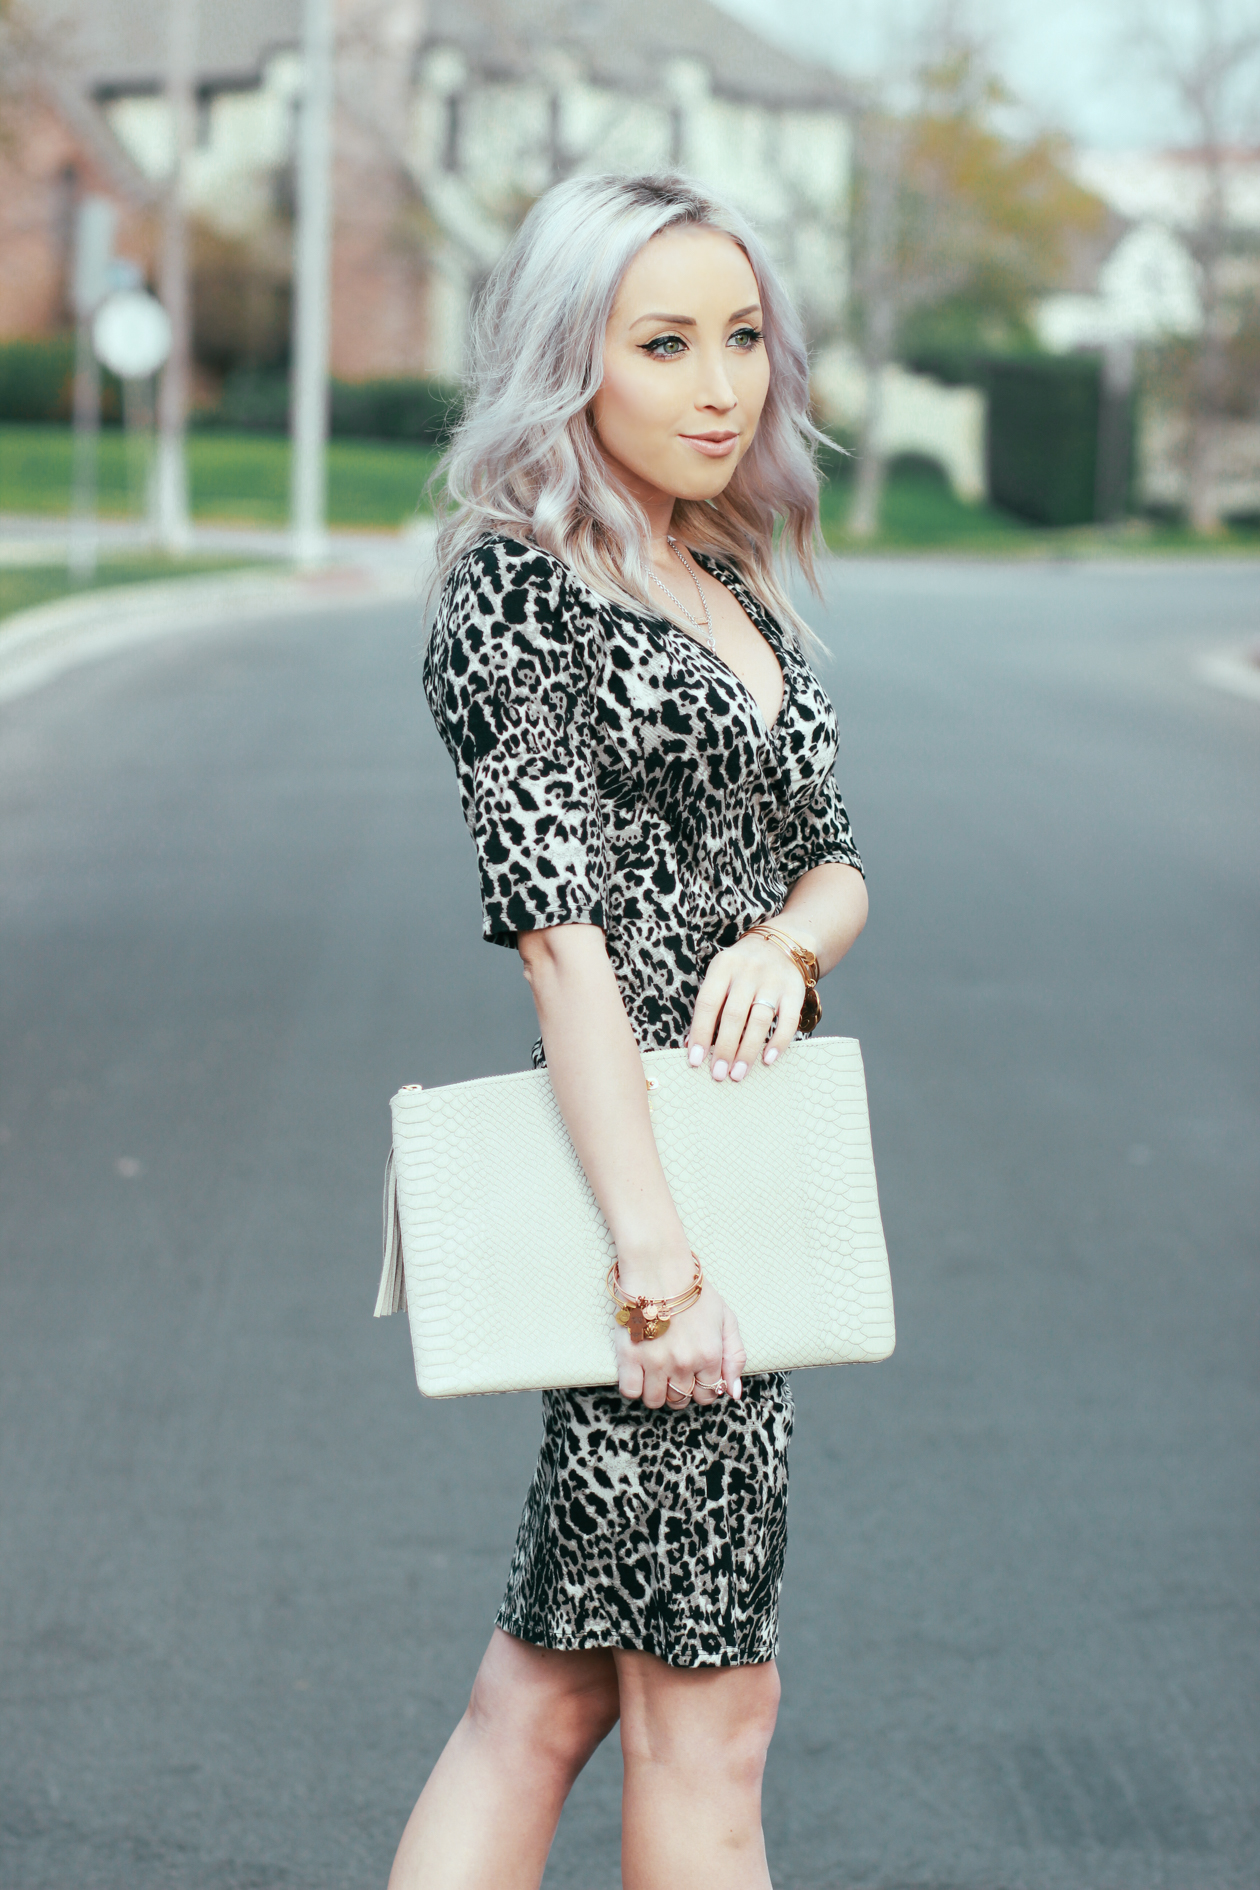 Leopard Wrap Dress | BlondieInTheCity.com